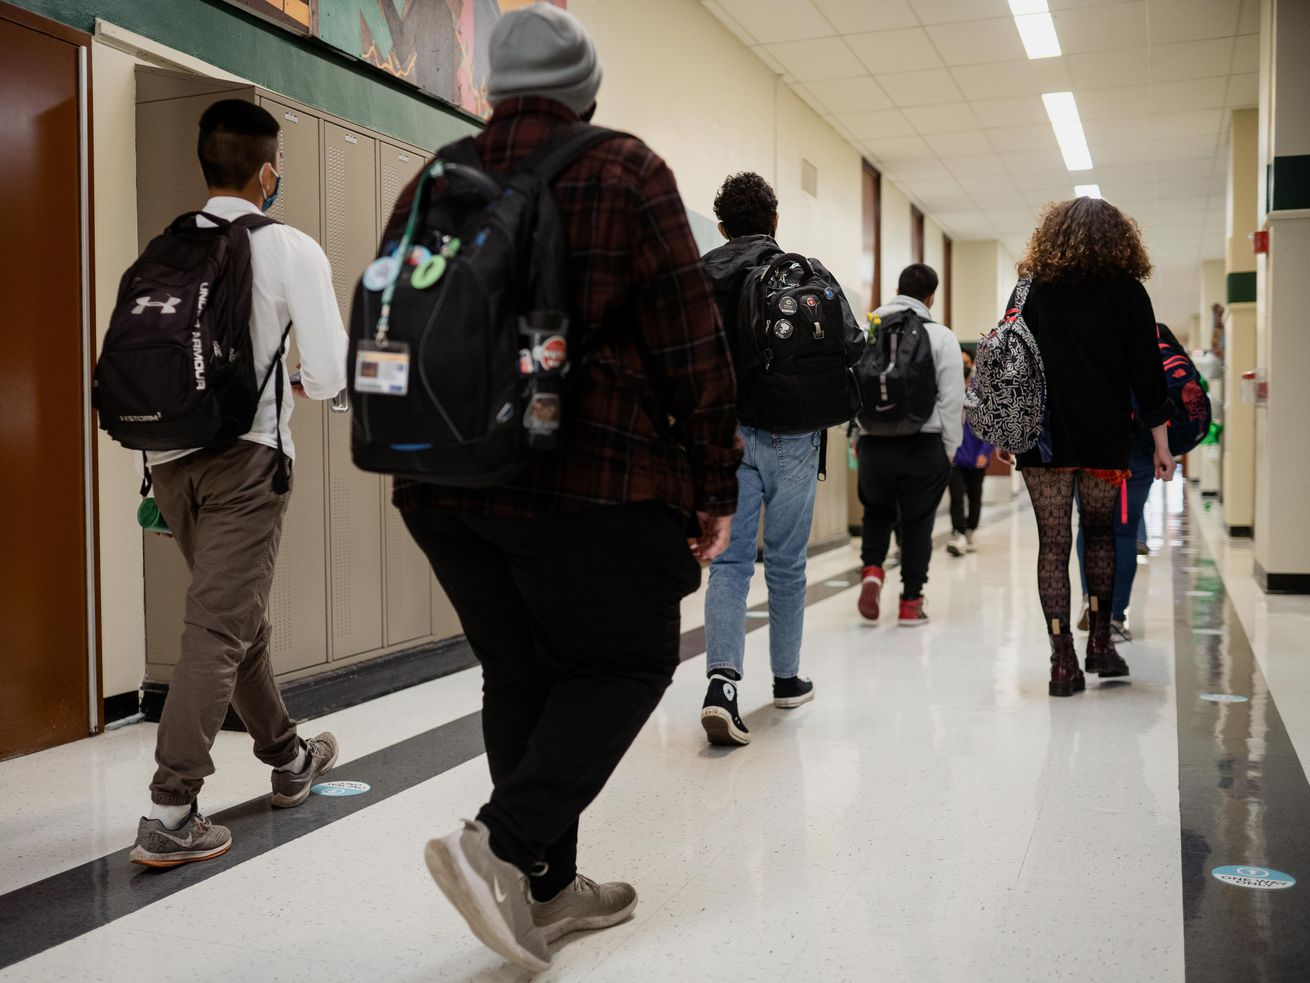 Students walk down the hall at Nicholas Senn High School in the Edgewater neighborhood, Friday afternoon, April 23, 2021. Chicago Public Schools students will return to schools Monday.